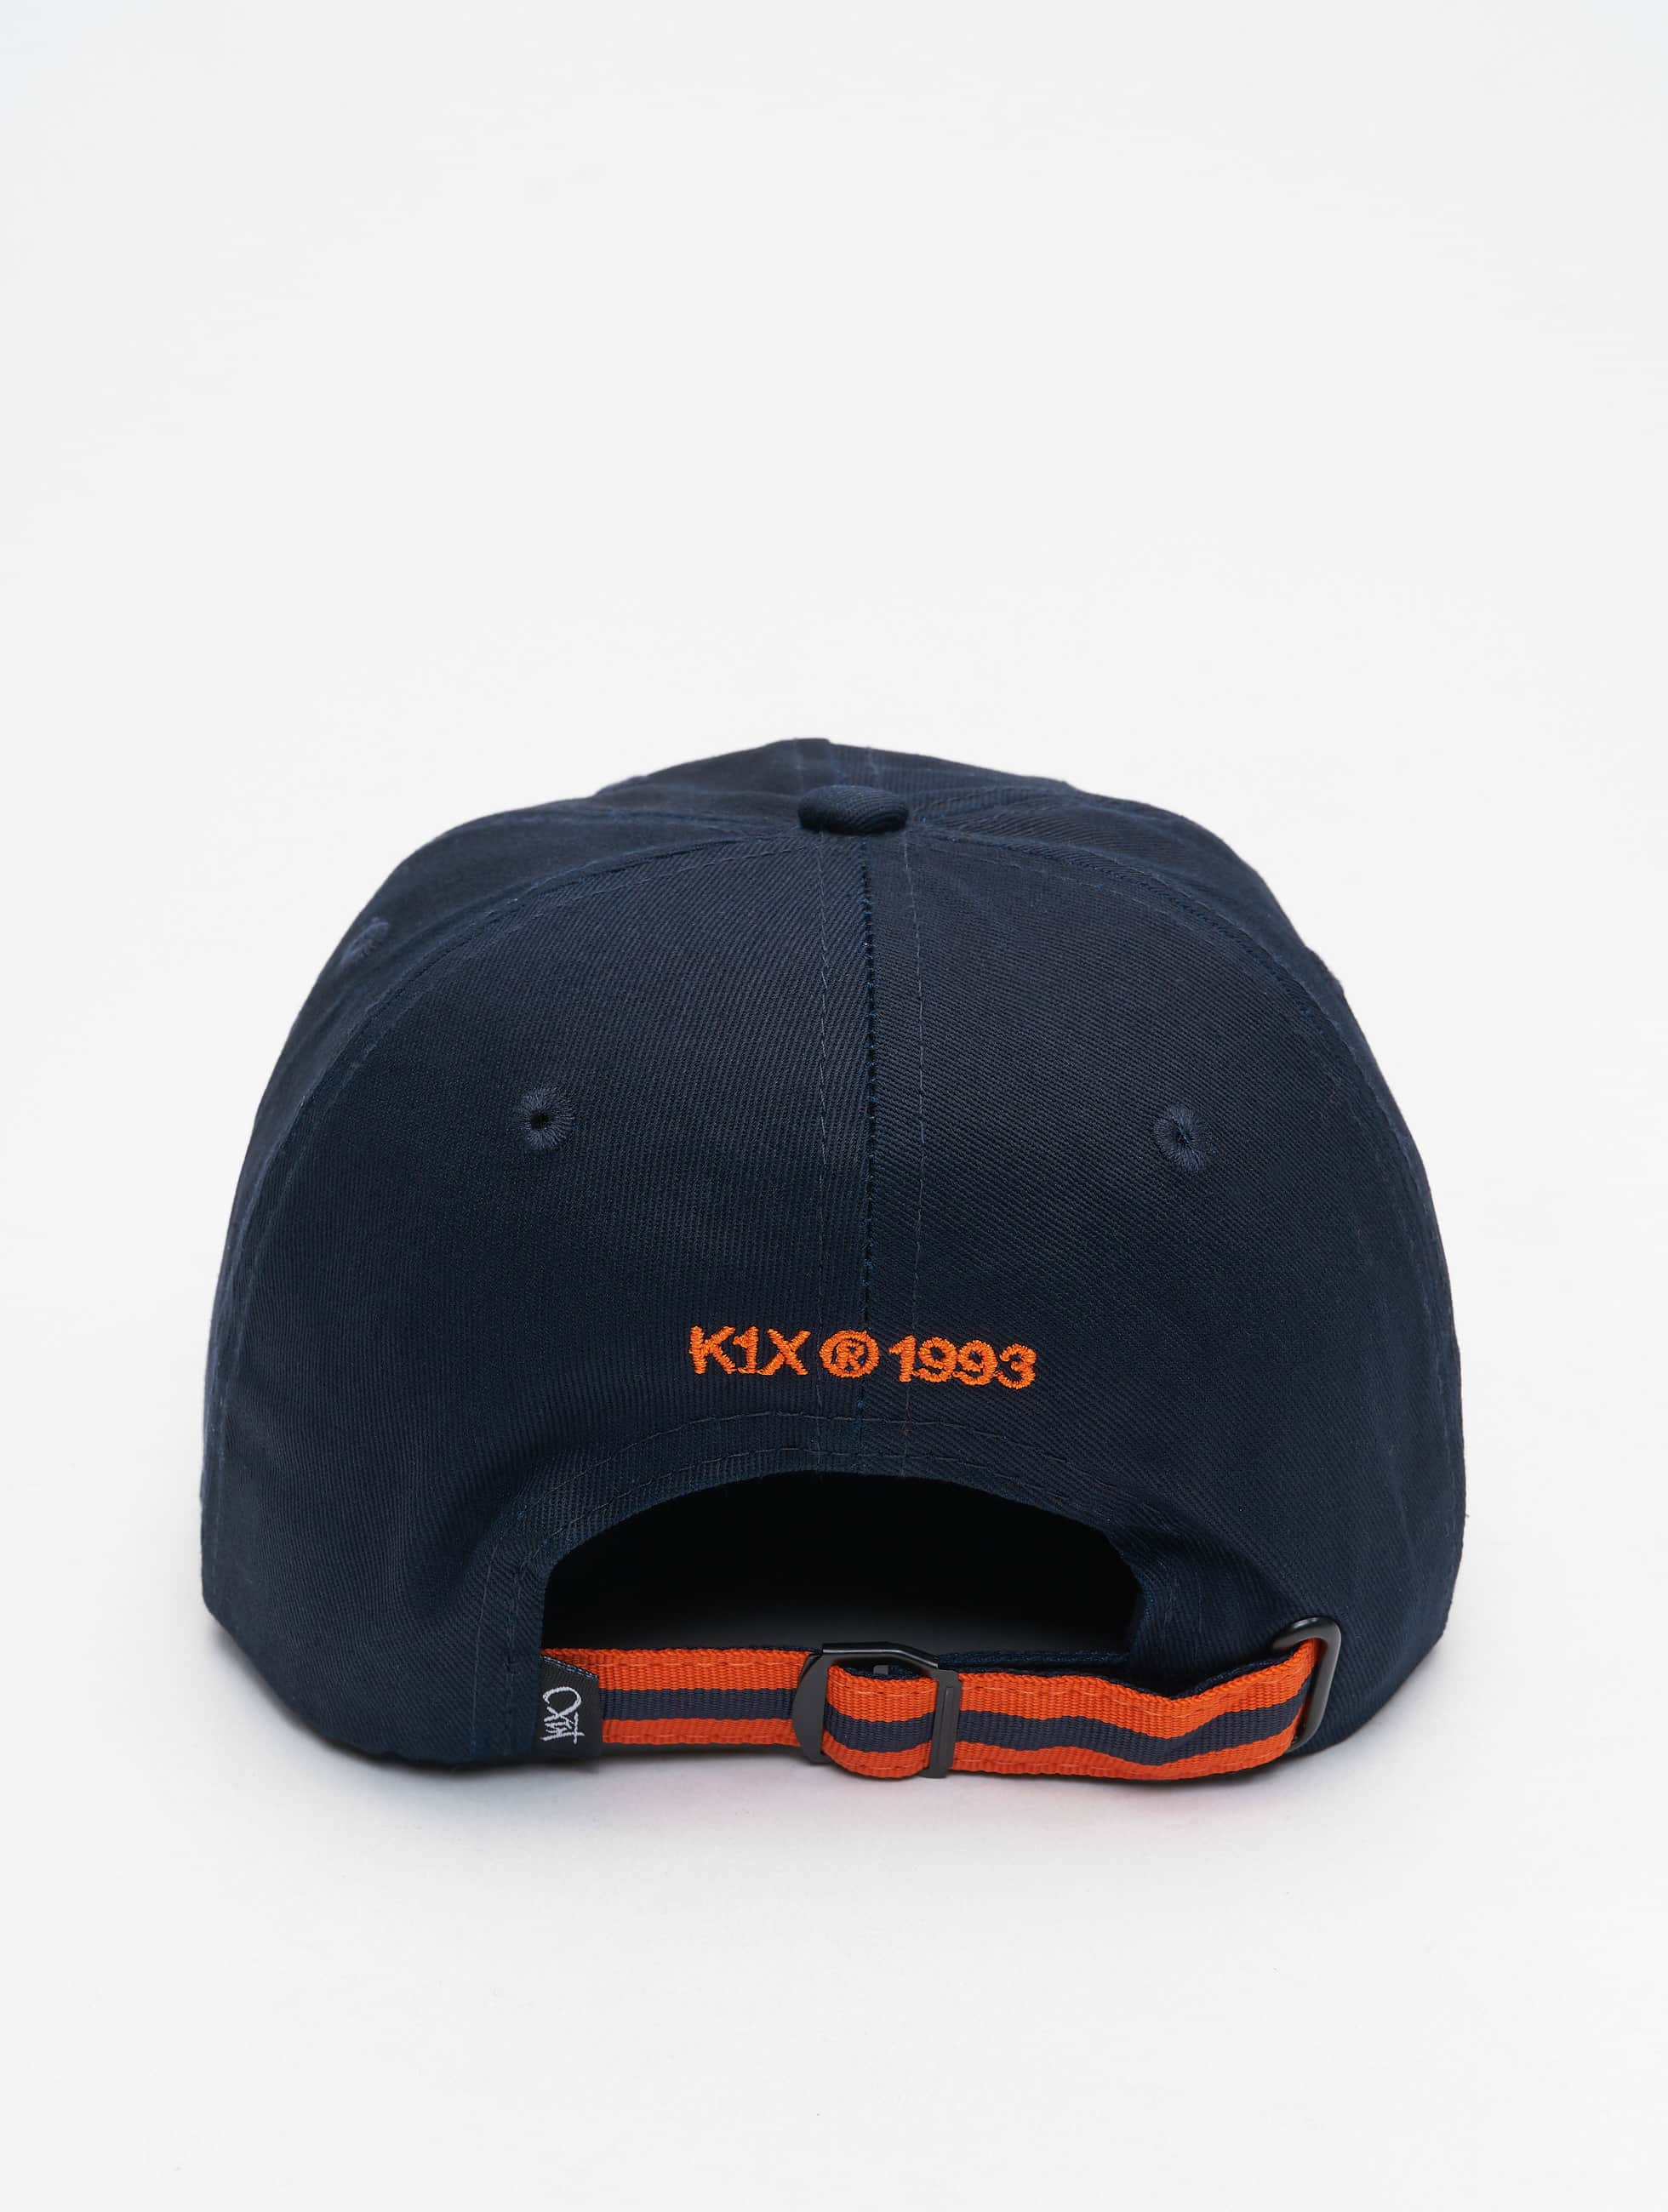 K1X Snapback Cap Play Hard Basketball Sports blue